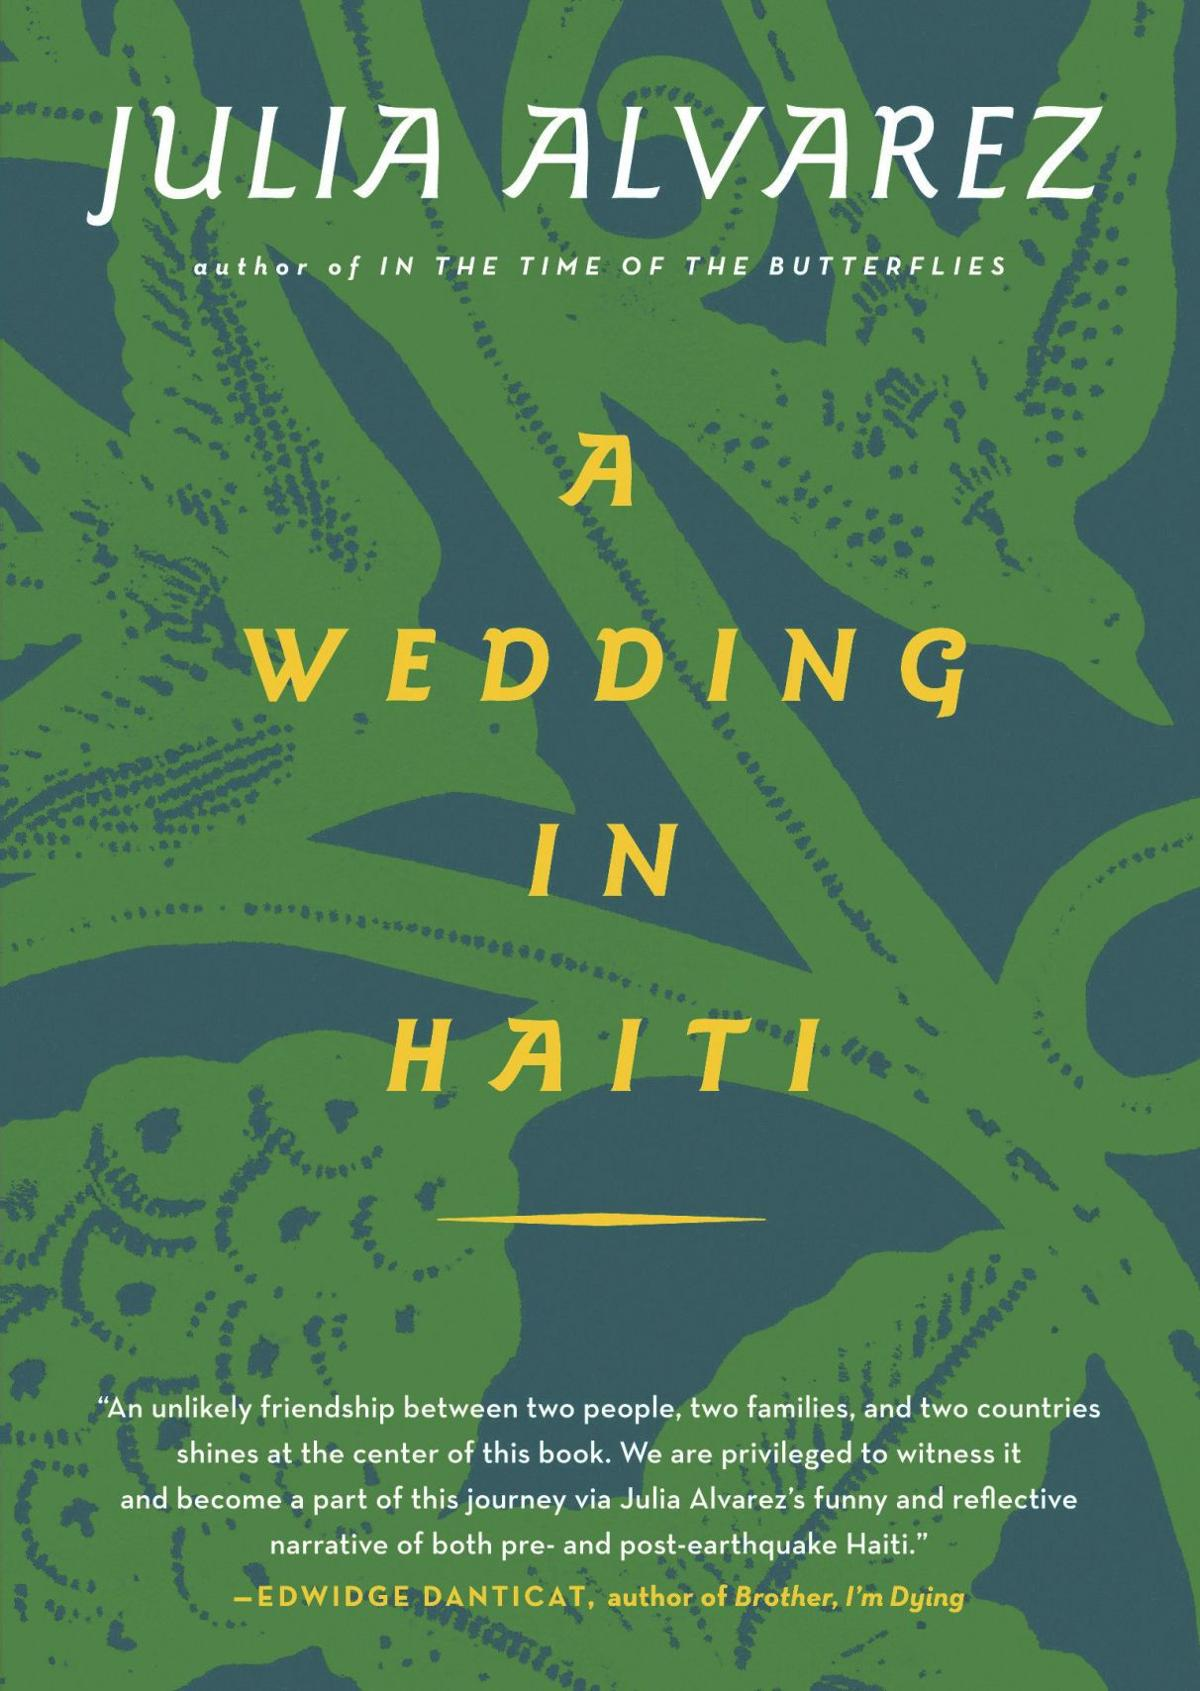 'A Wedding in Haiti' view of everyday life